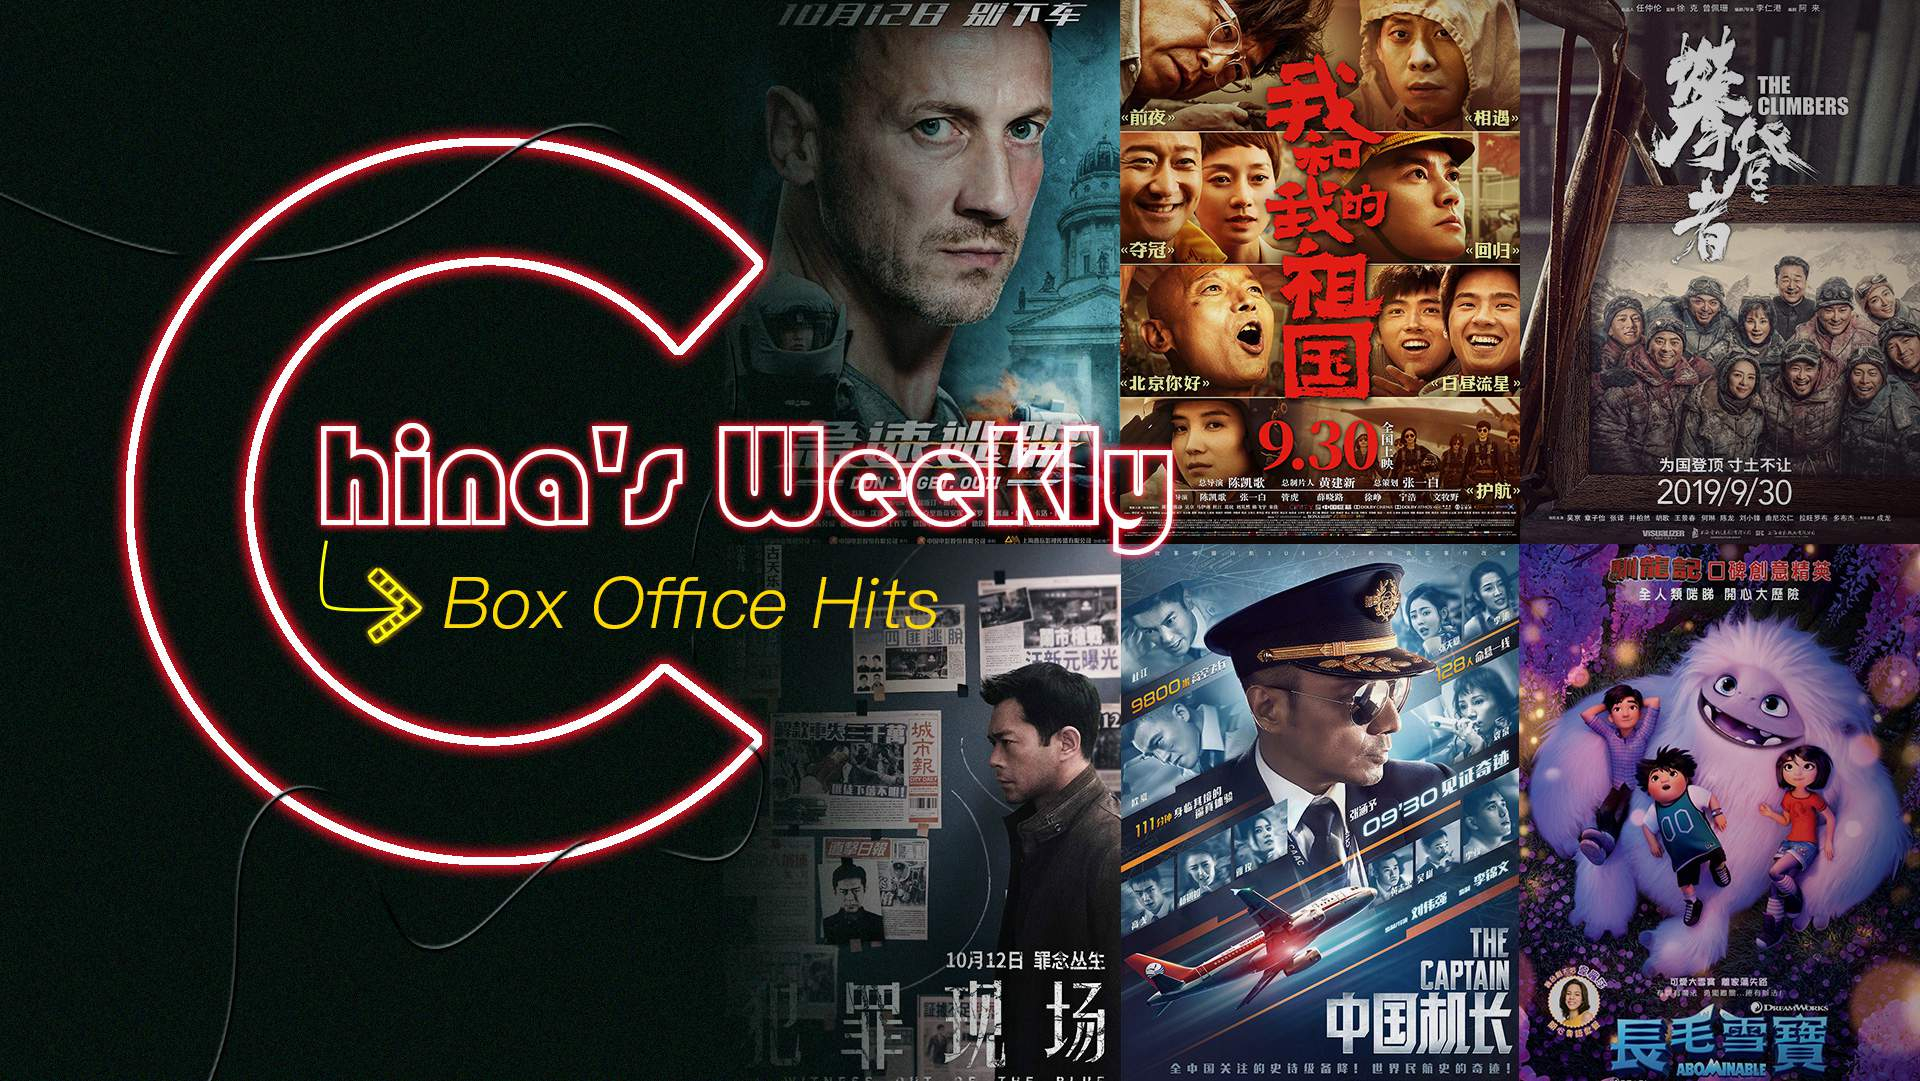 Patriotic films dominate box office during China's National Day holidays